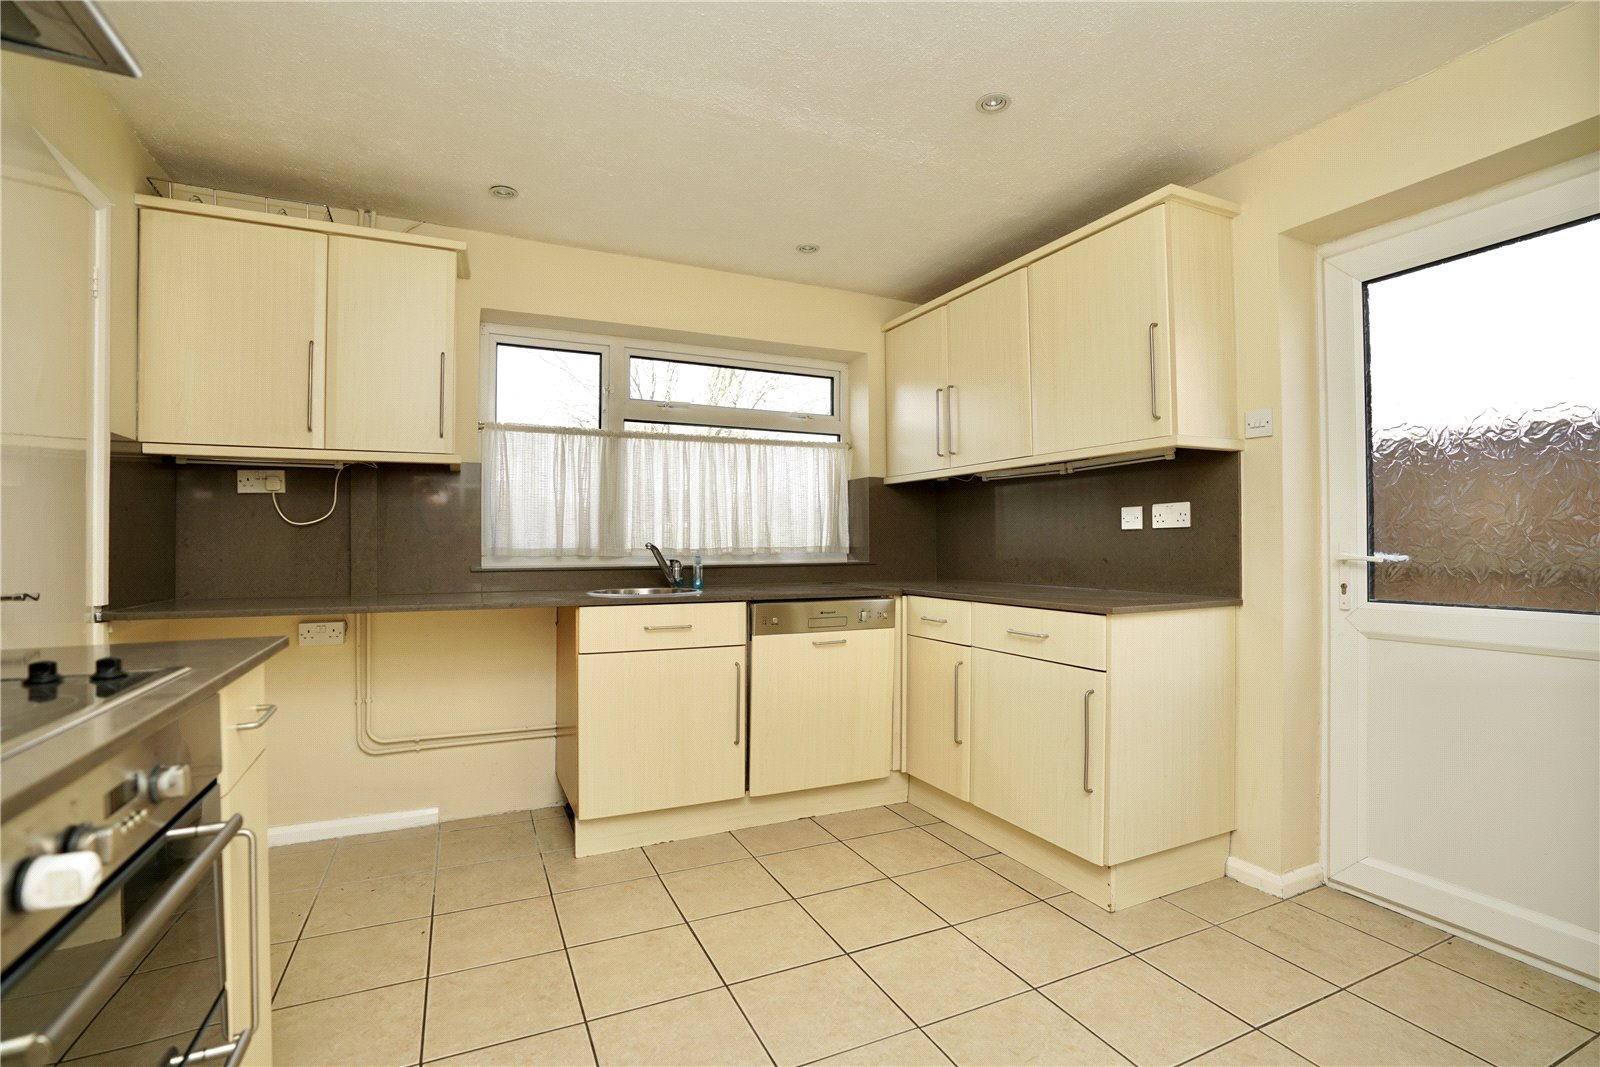 4 bed house for sale in Manor Close, Great Staughton  - Property Image 3